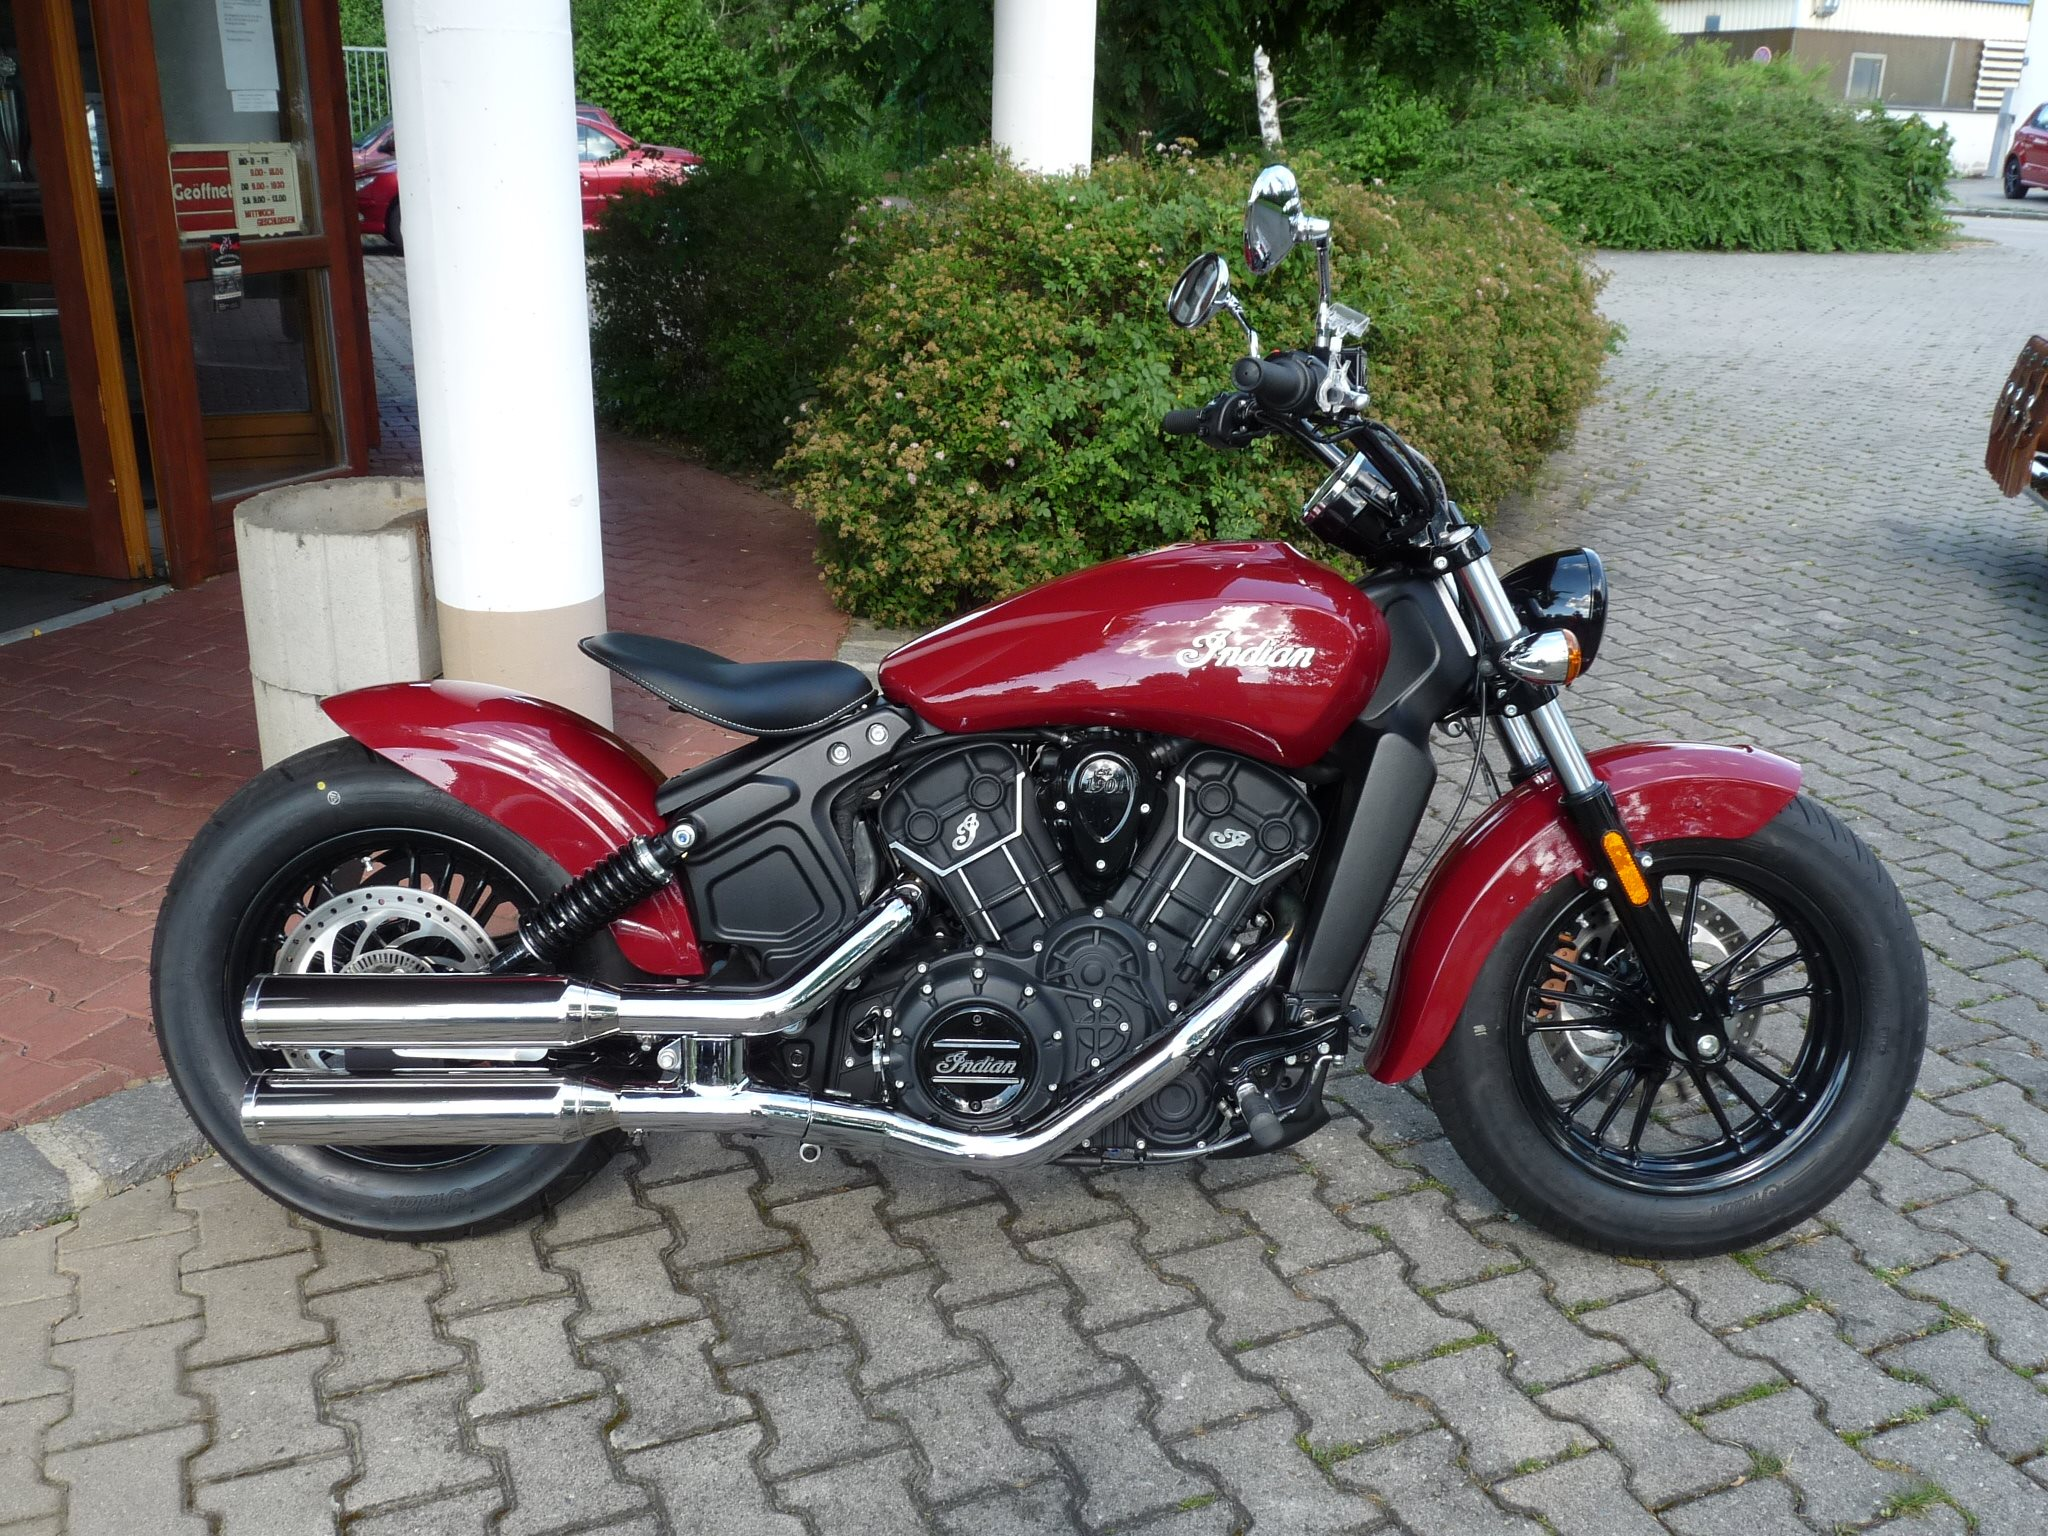 gebrauchte indian scout sixty erstzulassung 2016 0 km preis eur aus bayern. Black Bedroom Furniture Sets. Home Design Ideas